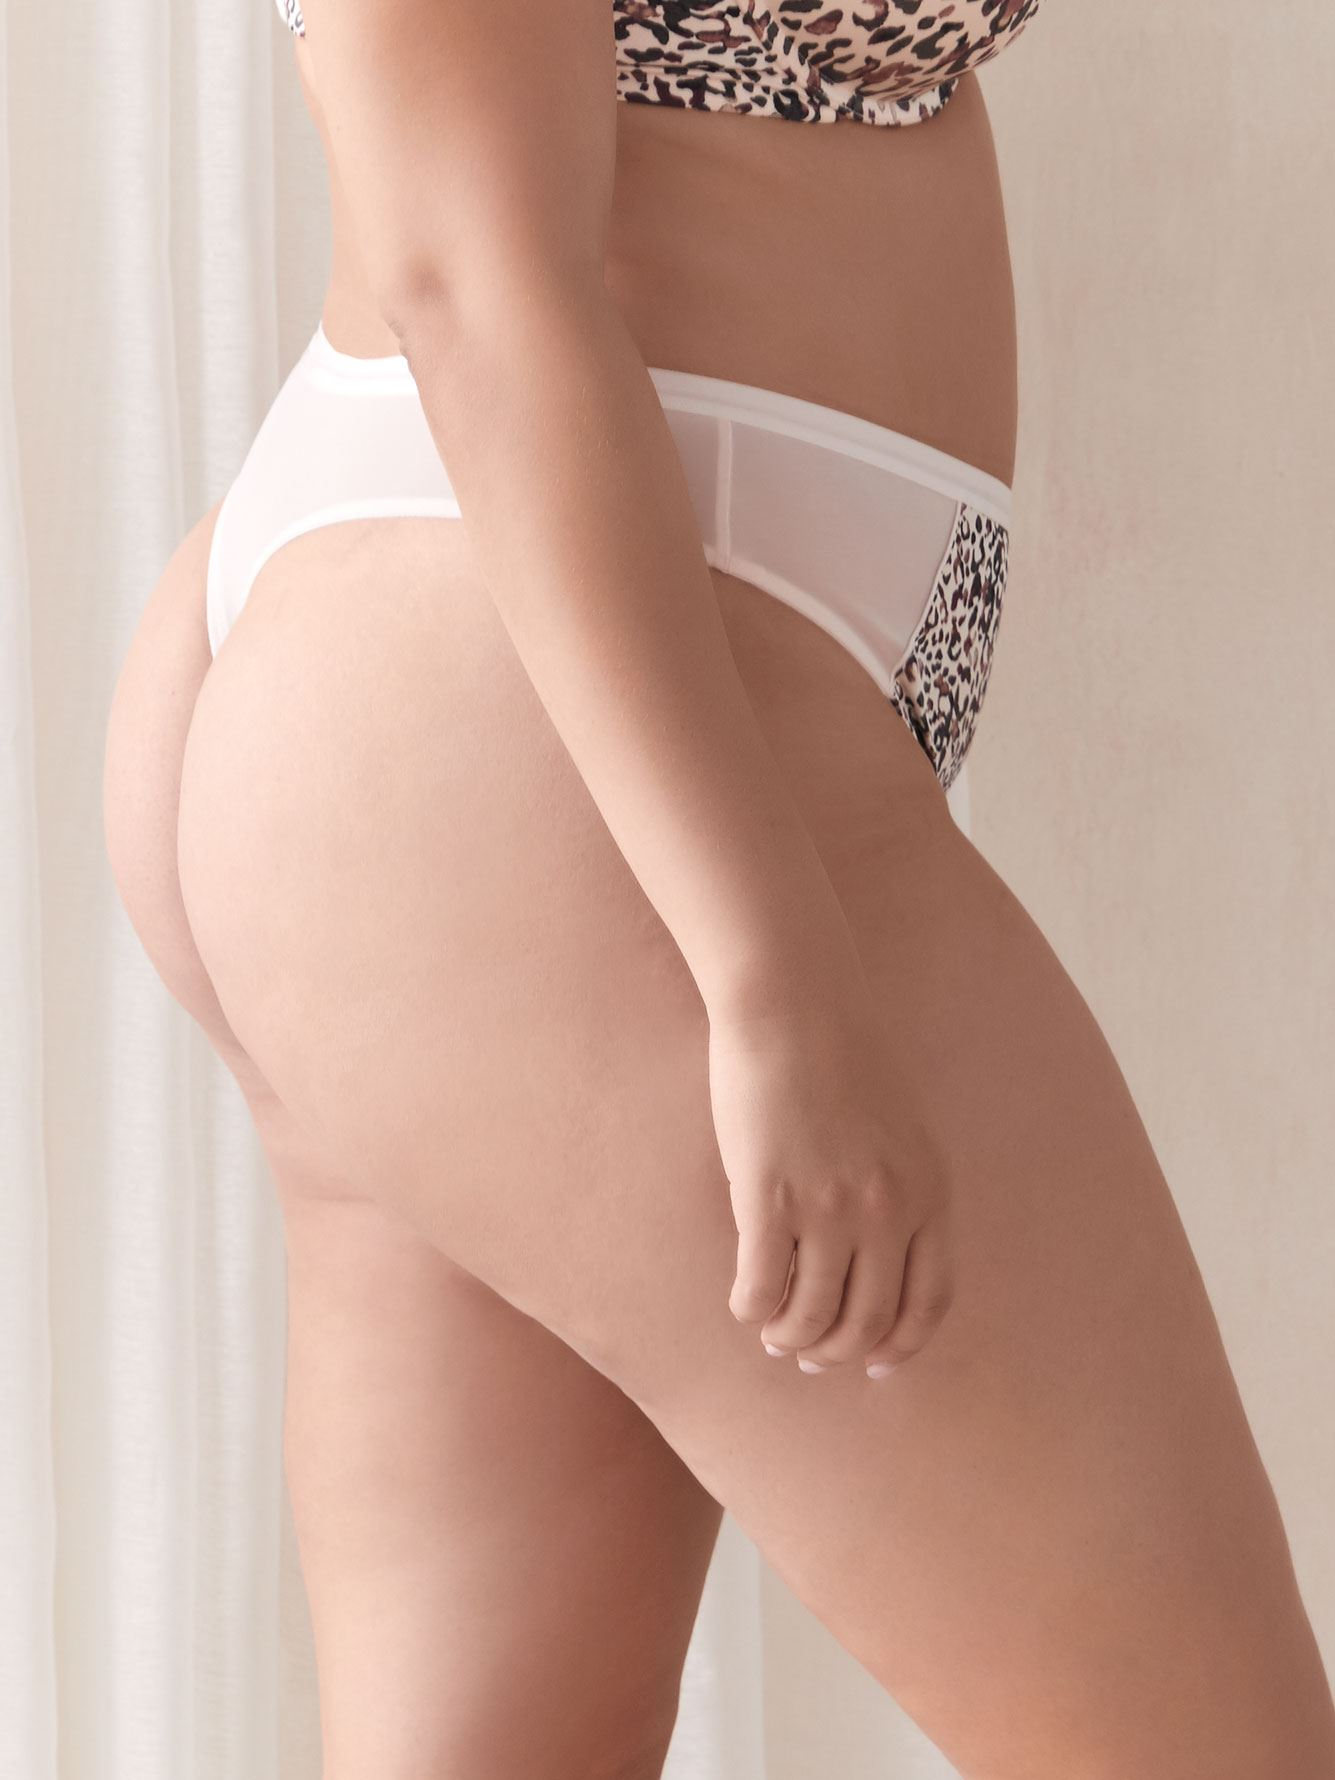 Animal Print Thong Panty - Déesse Collection